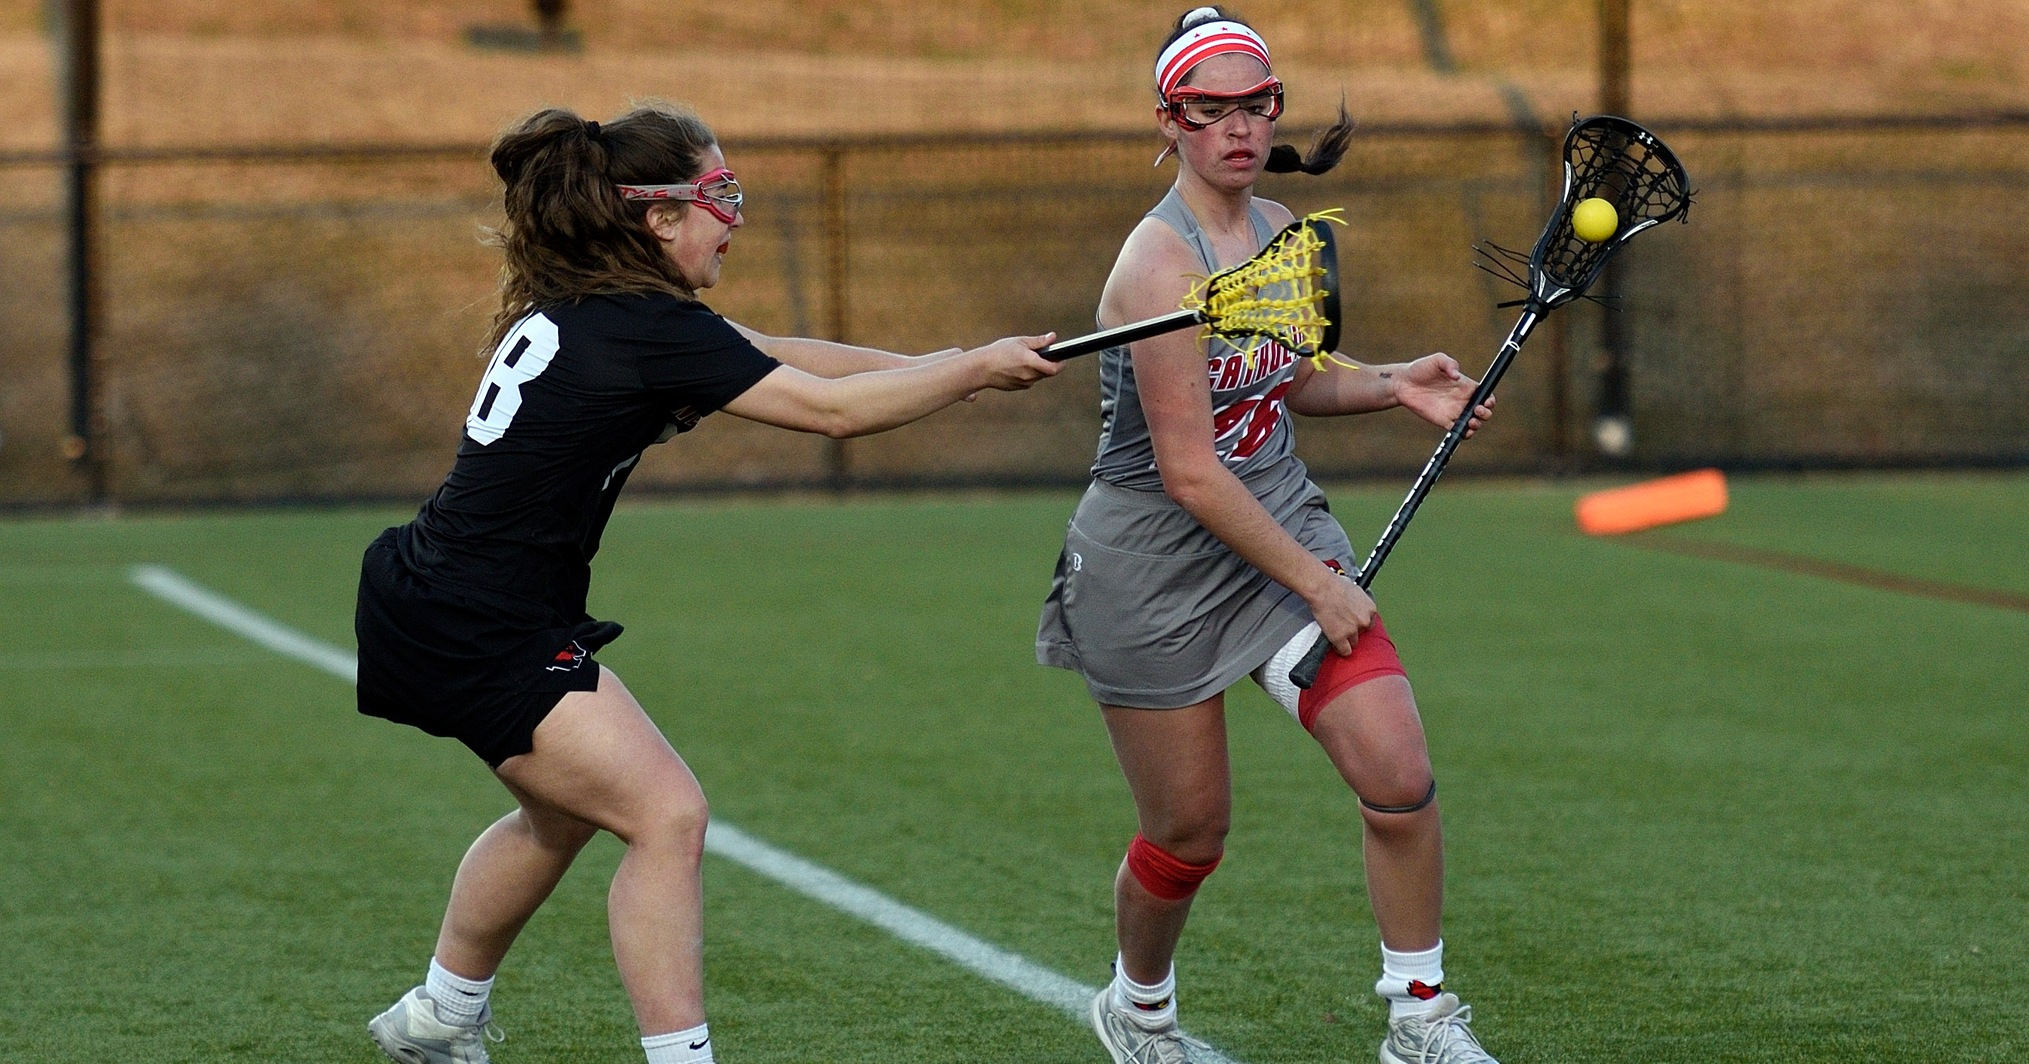 No. 16 Cardinals Fall to No. 12 Wesleyan (CT) at US Lacrosse